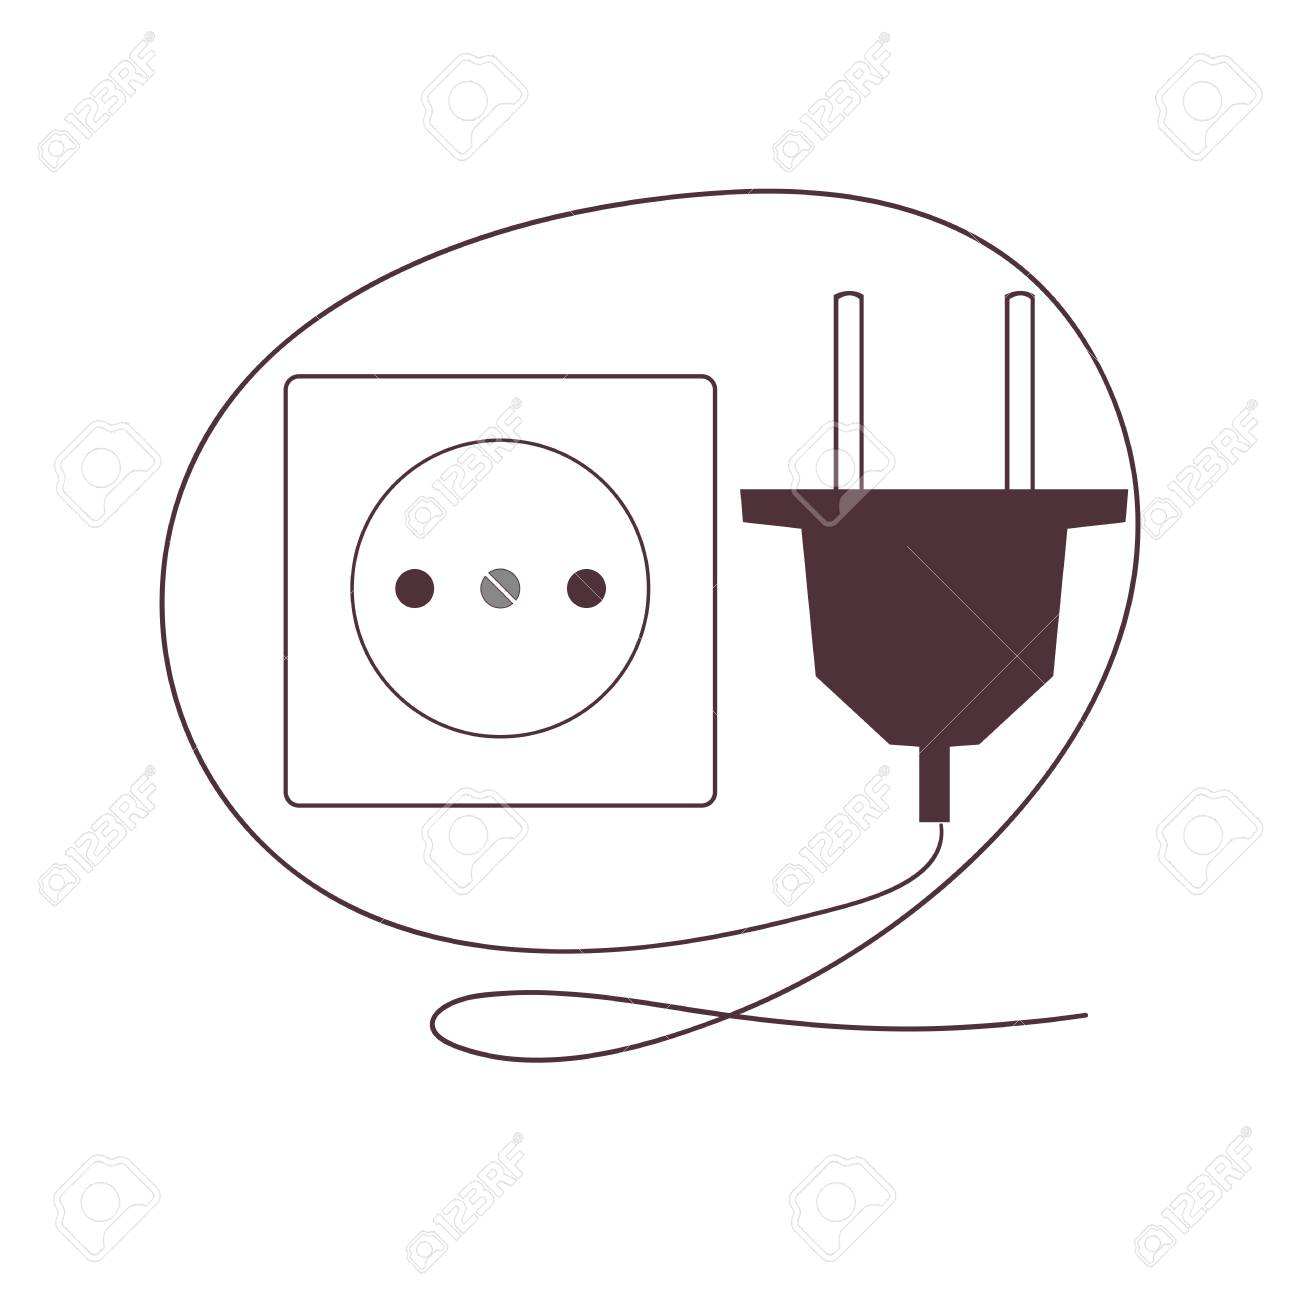 Plug and socket Stock Vector - 16282437